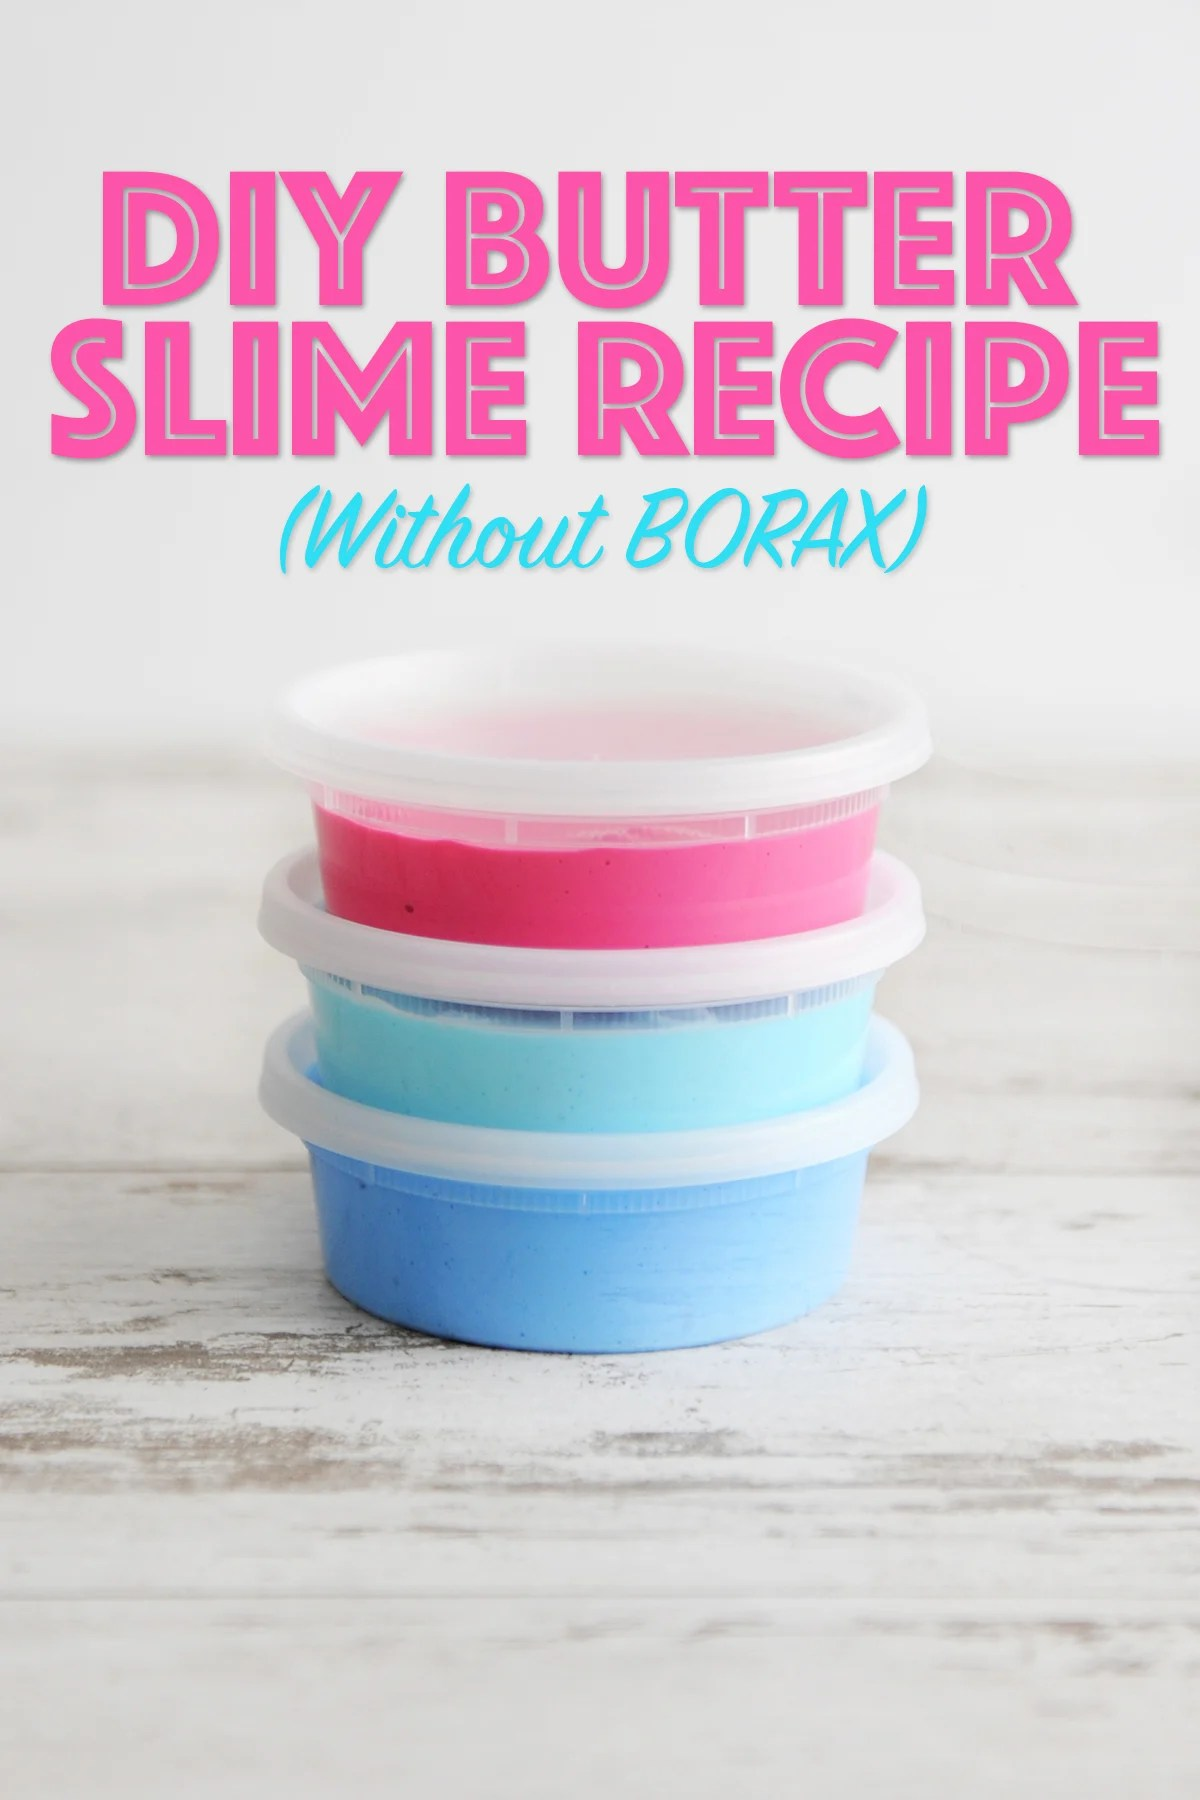 photo about Slime Recipe Printable identify Perfect Butter Slime Recipe for Youngsters With no Borax